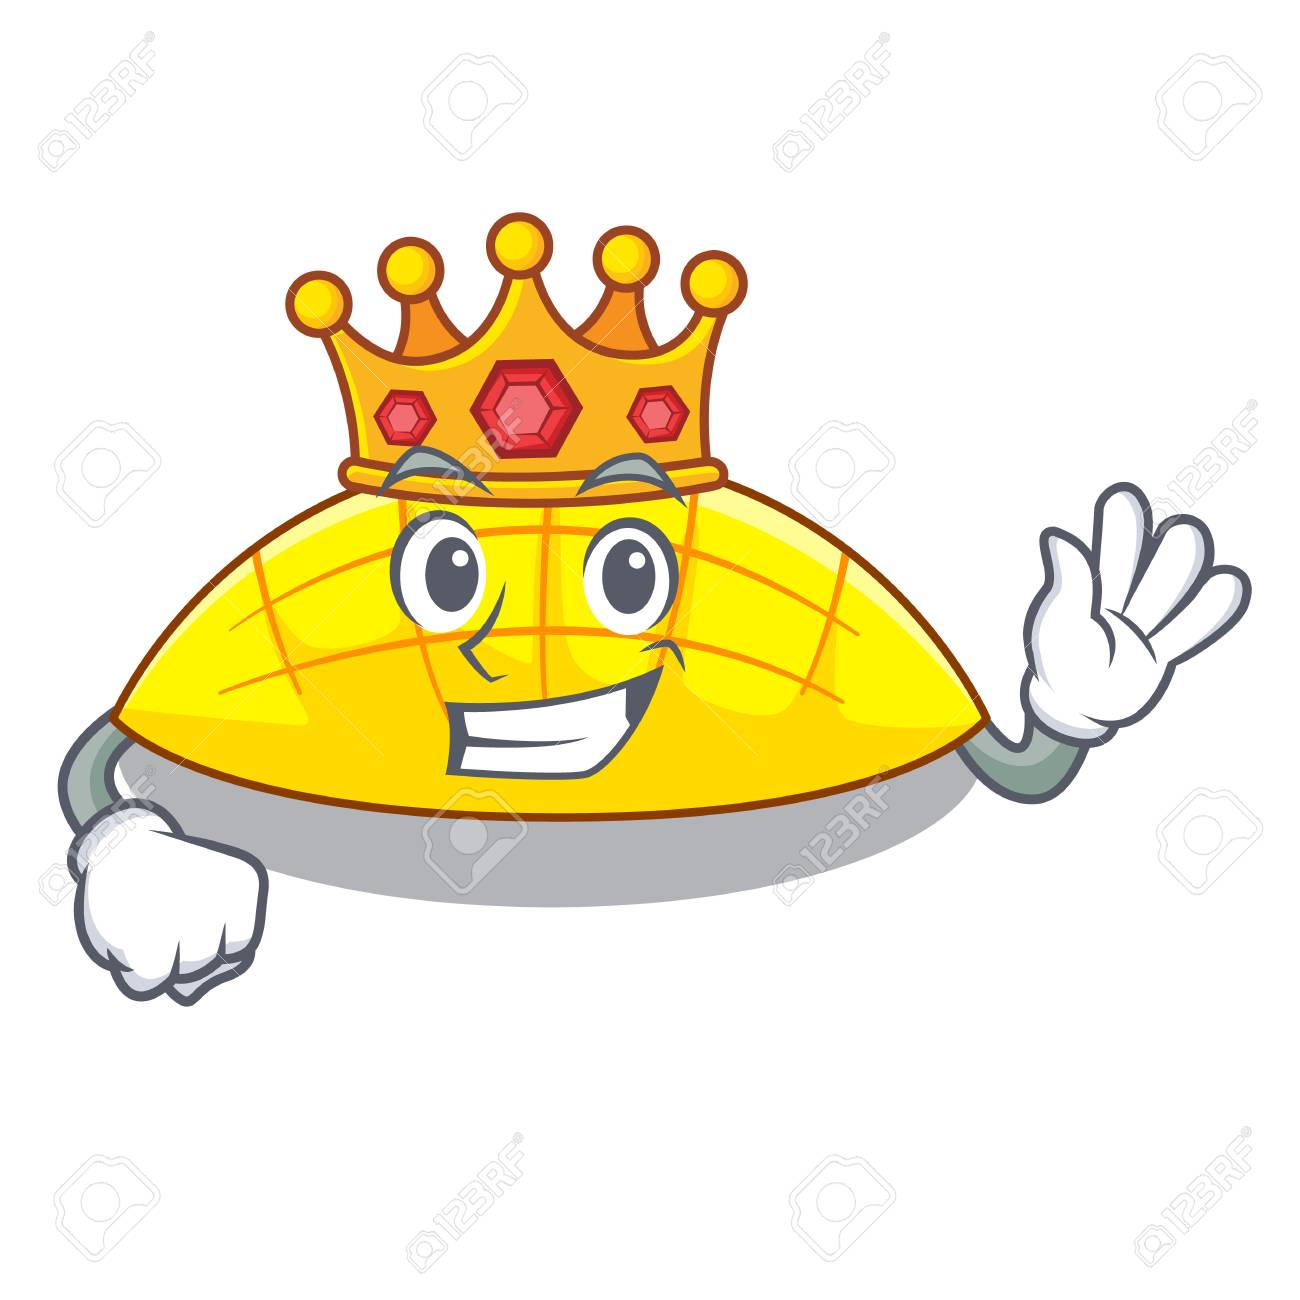 King Slices Mango On With Cartoon Funny Vector Illustartion Royalty Free Cliparts Vectors And Stock Illustration Image 112749249 Free vector icons in svg, psd, png, eps and icon font. king slices mango on with cartoon funny vector illustartion